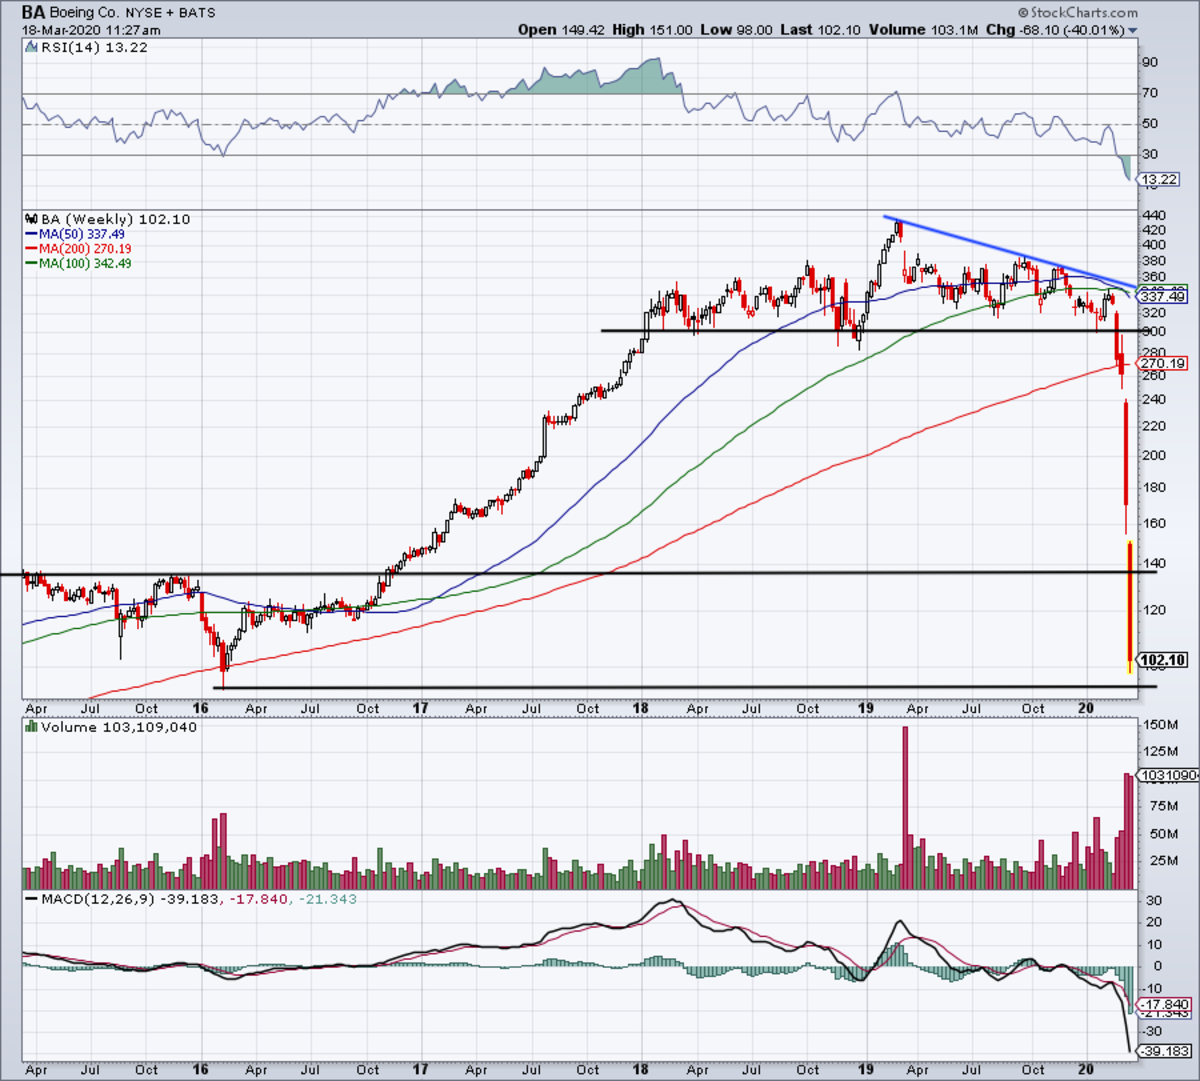 Weekly chart of Boeing stock.